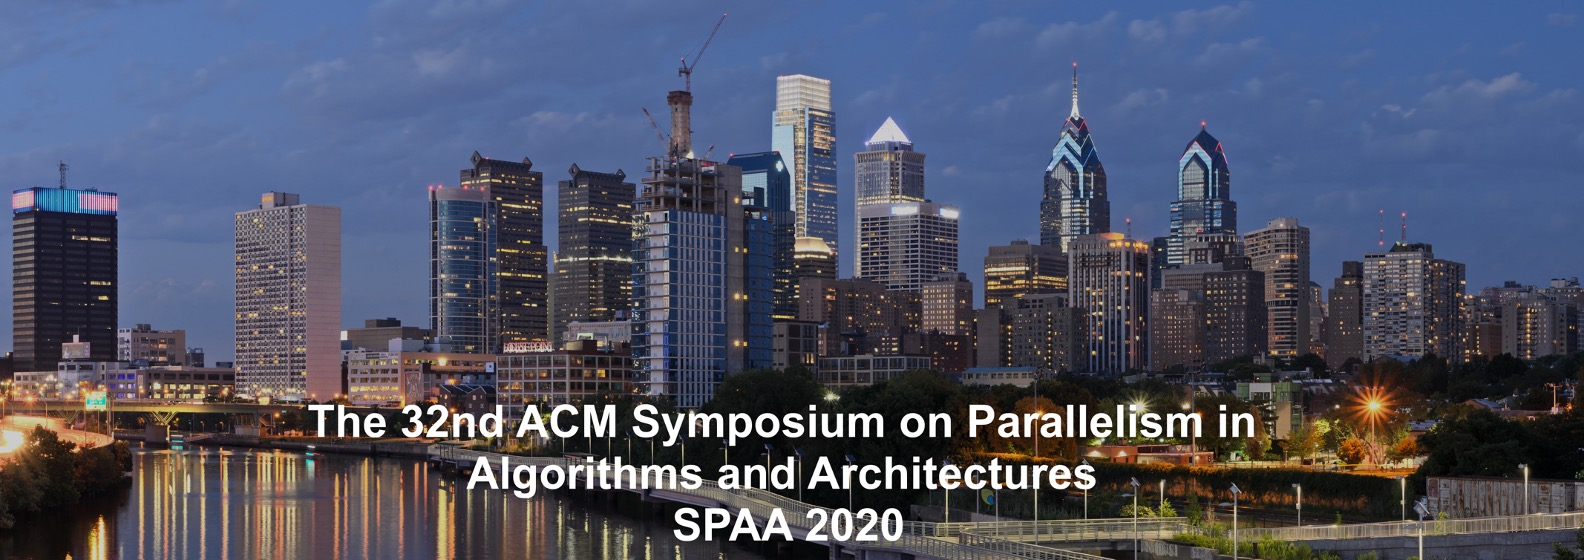 The 32nd ACM Symposium on Parallelism in Algorithms and Architectures (SPAA 2020)